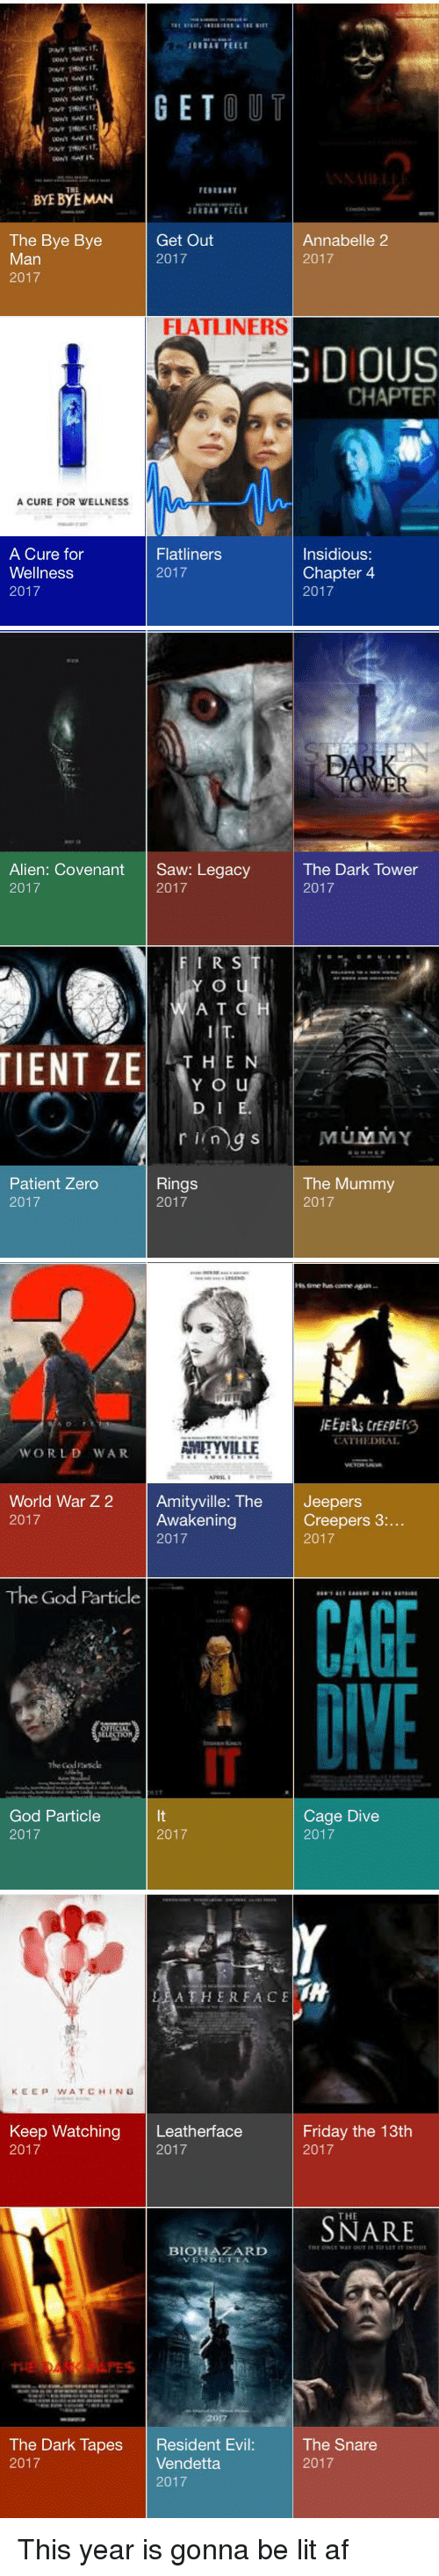 the mummy: pour THWK 41.  BYE BYE MAN  The Bye Bye  Man  2017  A CURE FOR WELLNESS  A Cure for  Wellness  2017  GET  OUT  JORDAN PE ELE  Get Out  Annabelle 2  2017  2017  FLATLINERS  DIOUS  CHAPTER  Flatliners  Insidious:  Chapter 4  2017  2017   Alien: Covenant  Saw: Legacy  2017  2017  FIRST  YLO  A T C  TIENT ZE  THE N  Y O u  D I  r ling S  Rings  Patient Zero  2017  2017  PAR  The Dark Tower  2017  MUMMY  The Mummy  2017   CATHEDRAL  AMITYVILLE  WORLD WAR  APRIL  World War Z 2  Amityville: The  Jeepers  Creepers 3  Awakening  2017  2017  2017  The God Particle  CAGE  The Good  Cage Dive  God Particle  2017  2017  2017   A THER FACE  KEEP WATCH IN G  Keep Watching  Leatherface  Friday the 13th  2017  2017  2017  THE  BIOHAZARD  THE ONMI WAN OUT TO LIT ET INSIDE  NVENDETTA  The Snare  The Dark Tapes  Resident Ev  Vendetta.  2017  2017  2017 This year is gonna be lit af